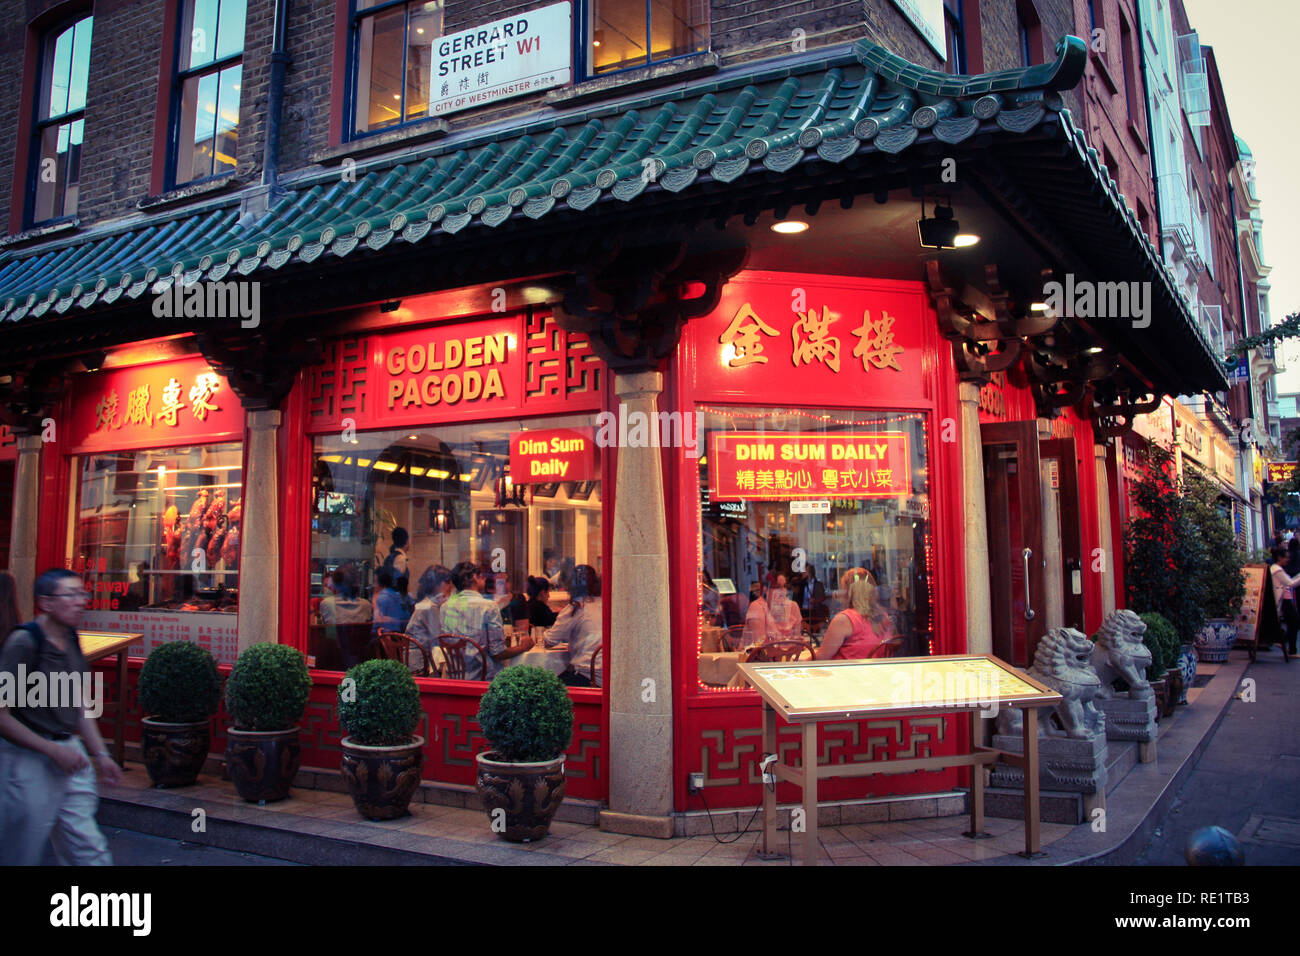 Typical Chinese Restaurant Golden Pagoda At Gerrard Street In China Town London United Kingdom Stock Photo Alamy